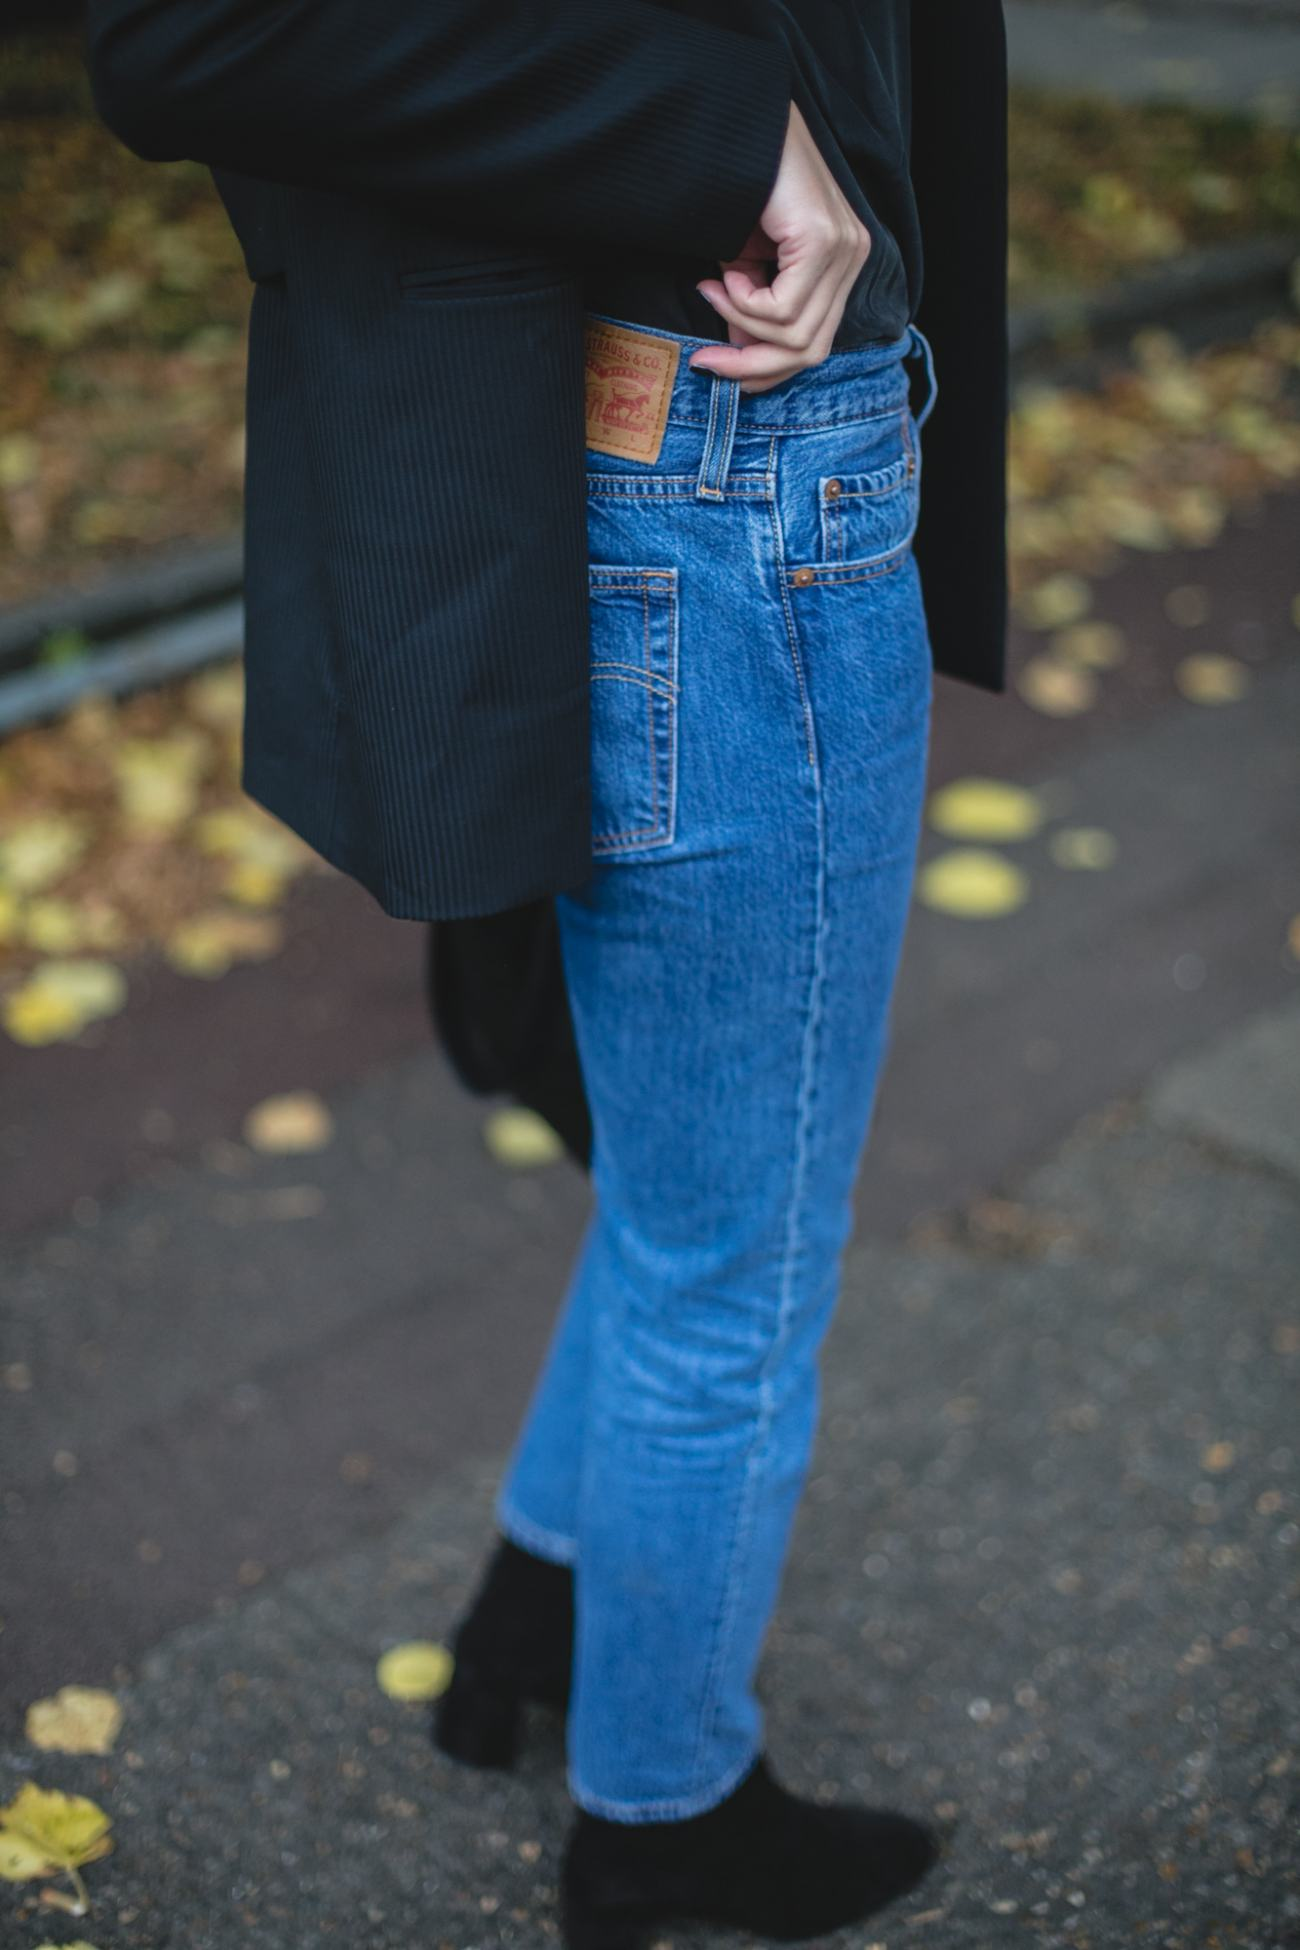 Autumn Wardrobe Staples | Emma Hill wears Levis 501 CT jeans